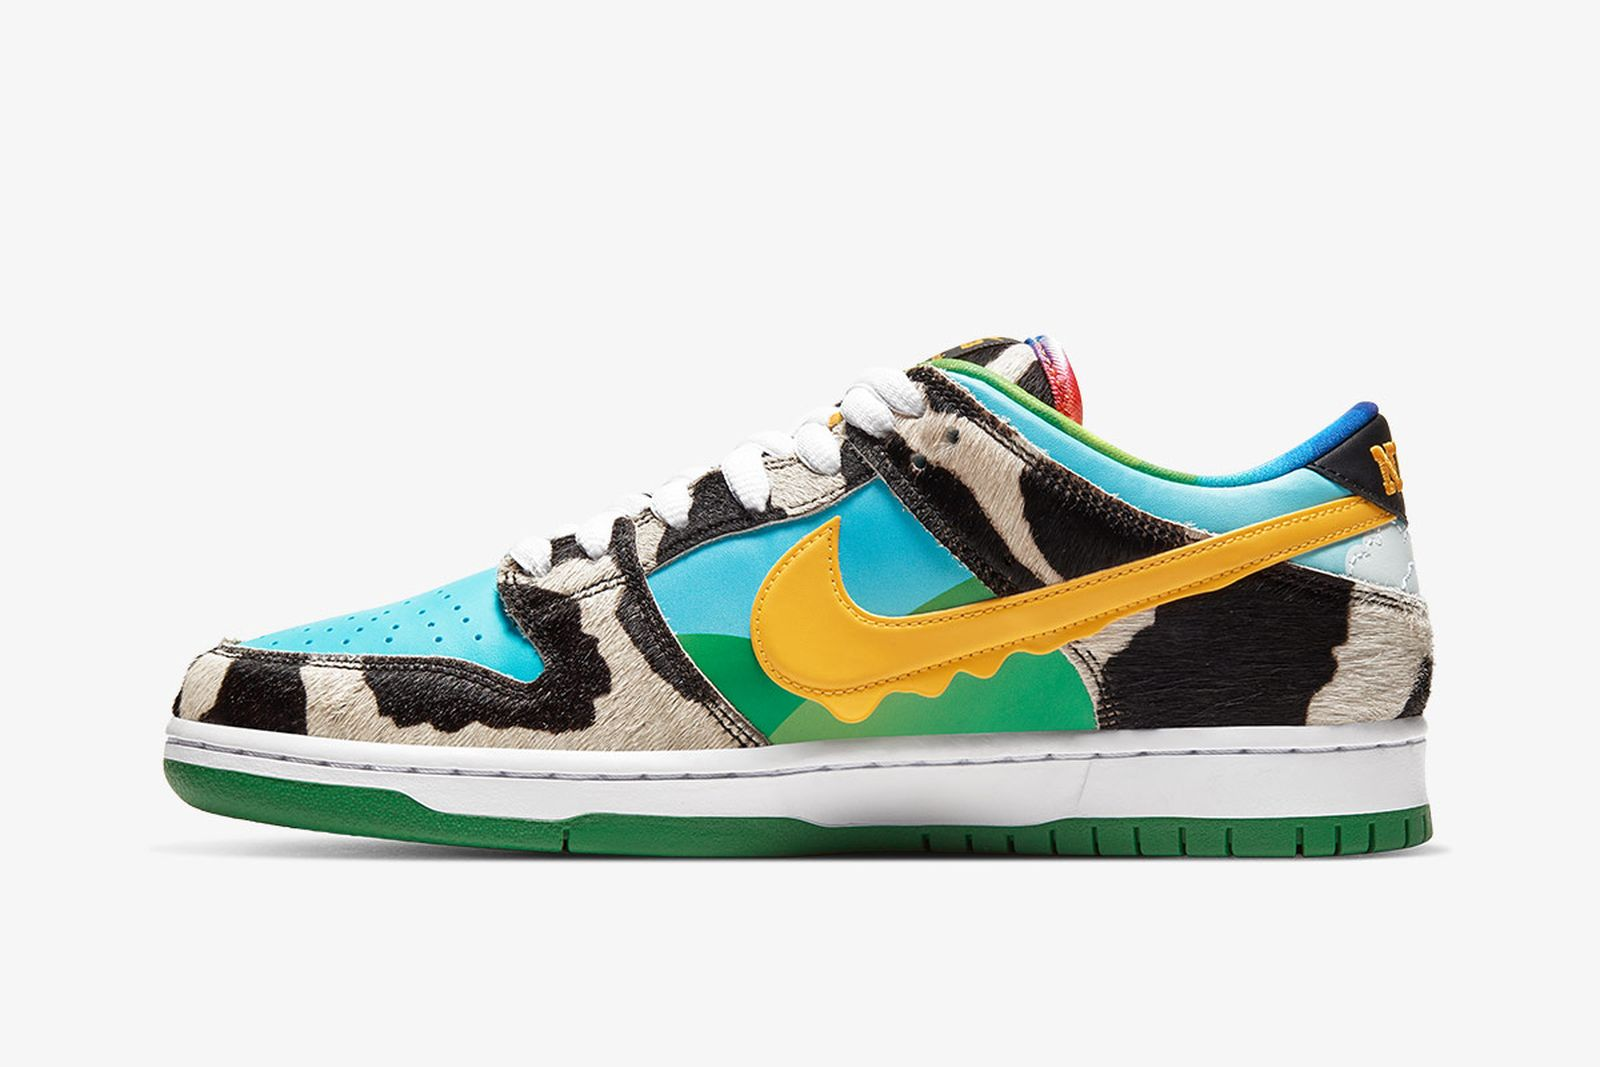 nike-sb-dunk-chunky-dunky-release-date-price-product-06